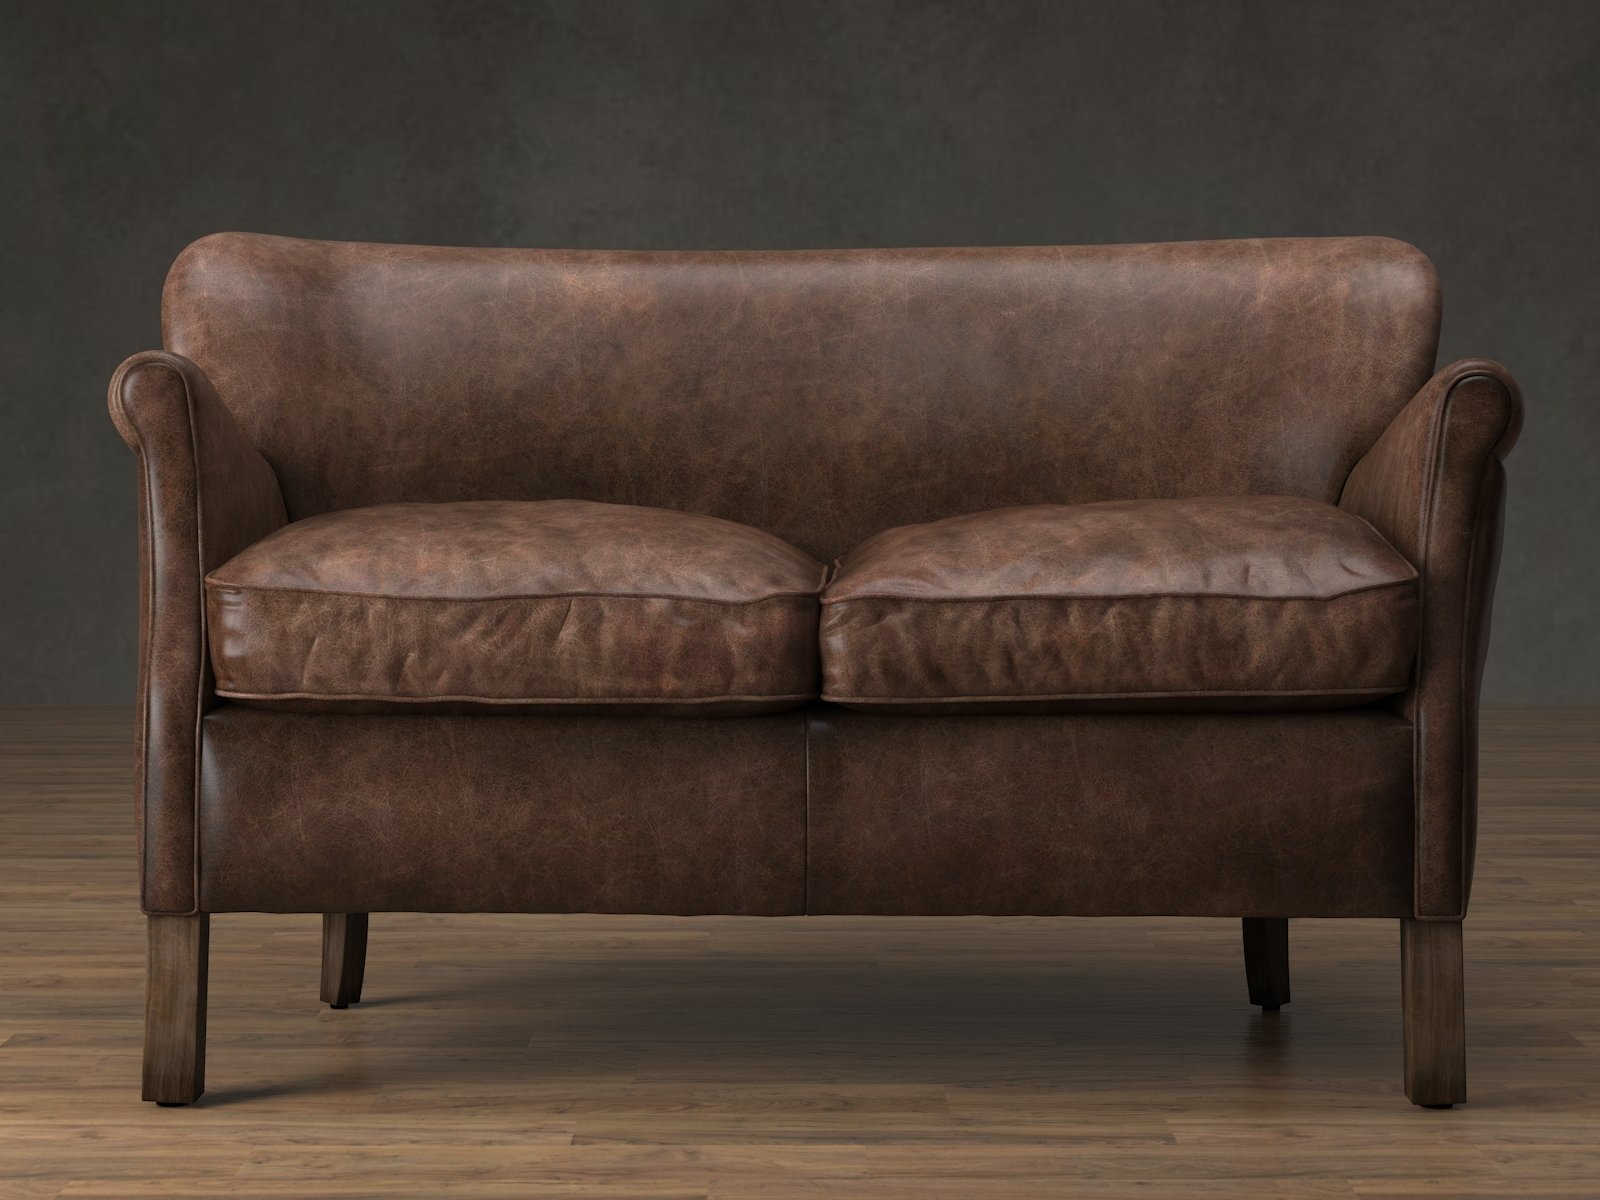 Professor 39 S Leather Double Chair 3D Modell Restoration Hardware